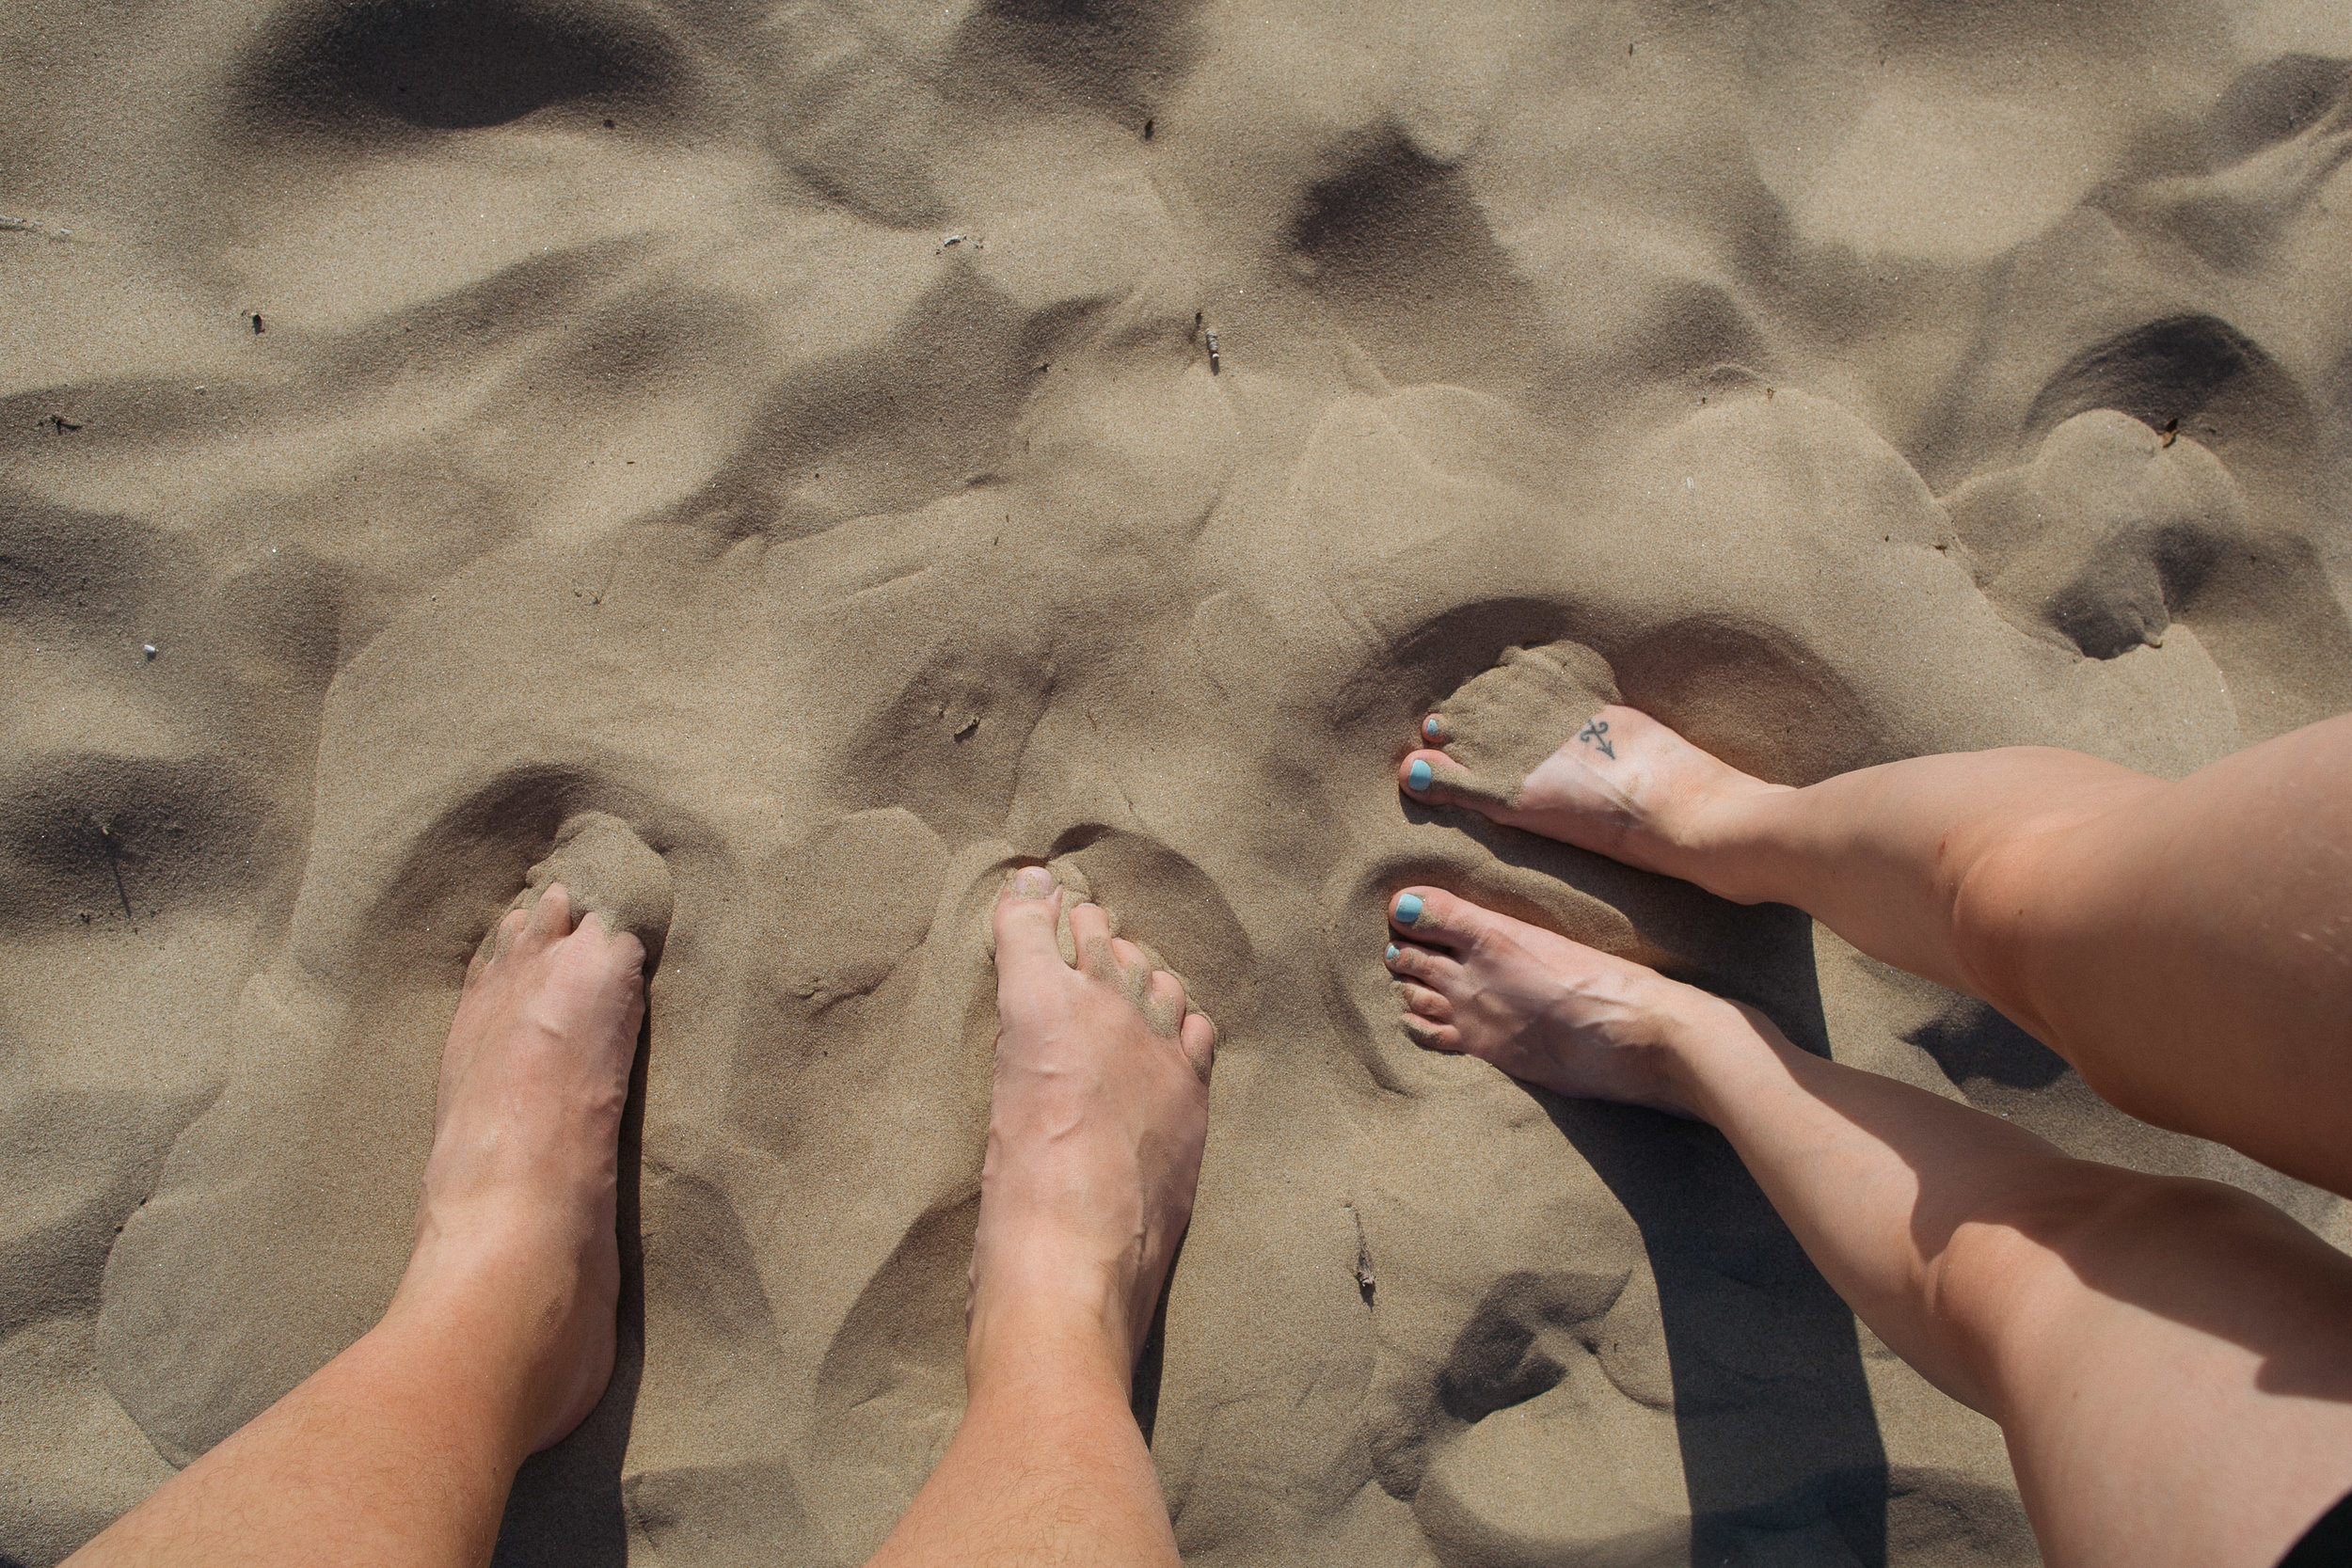 The best part about the sand here is how fine it is. It feels incredible on your feet.